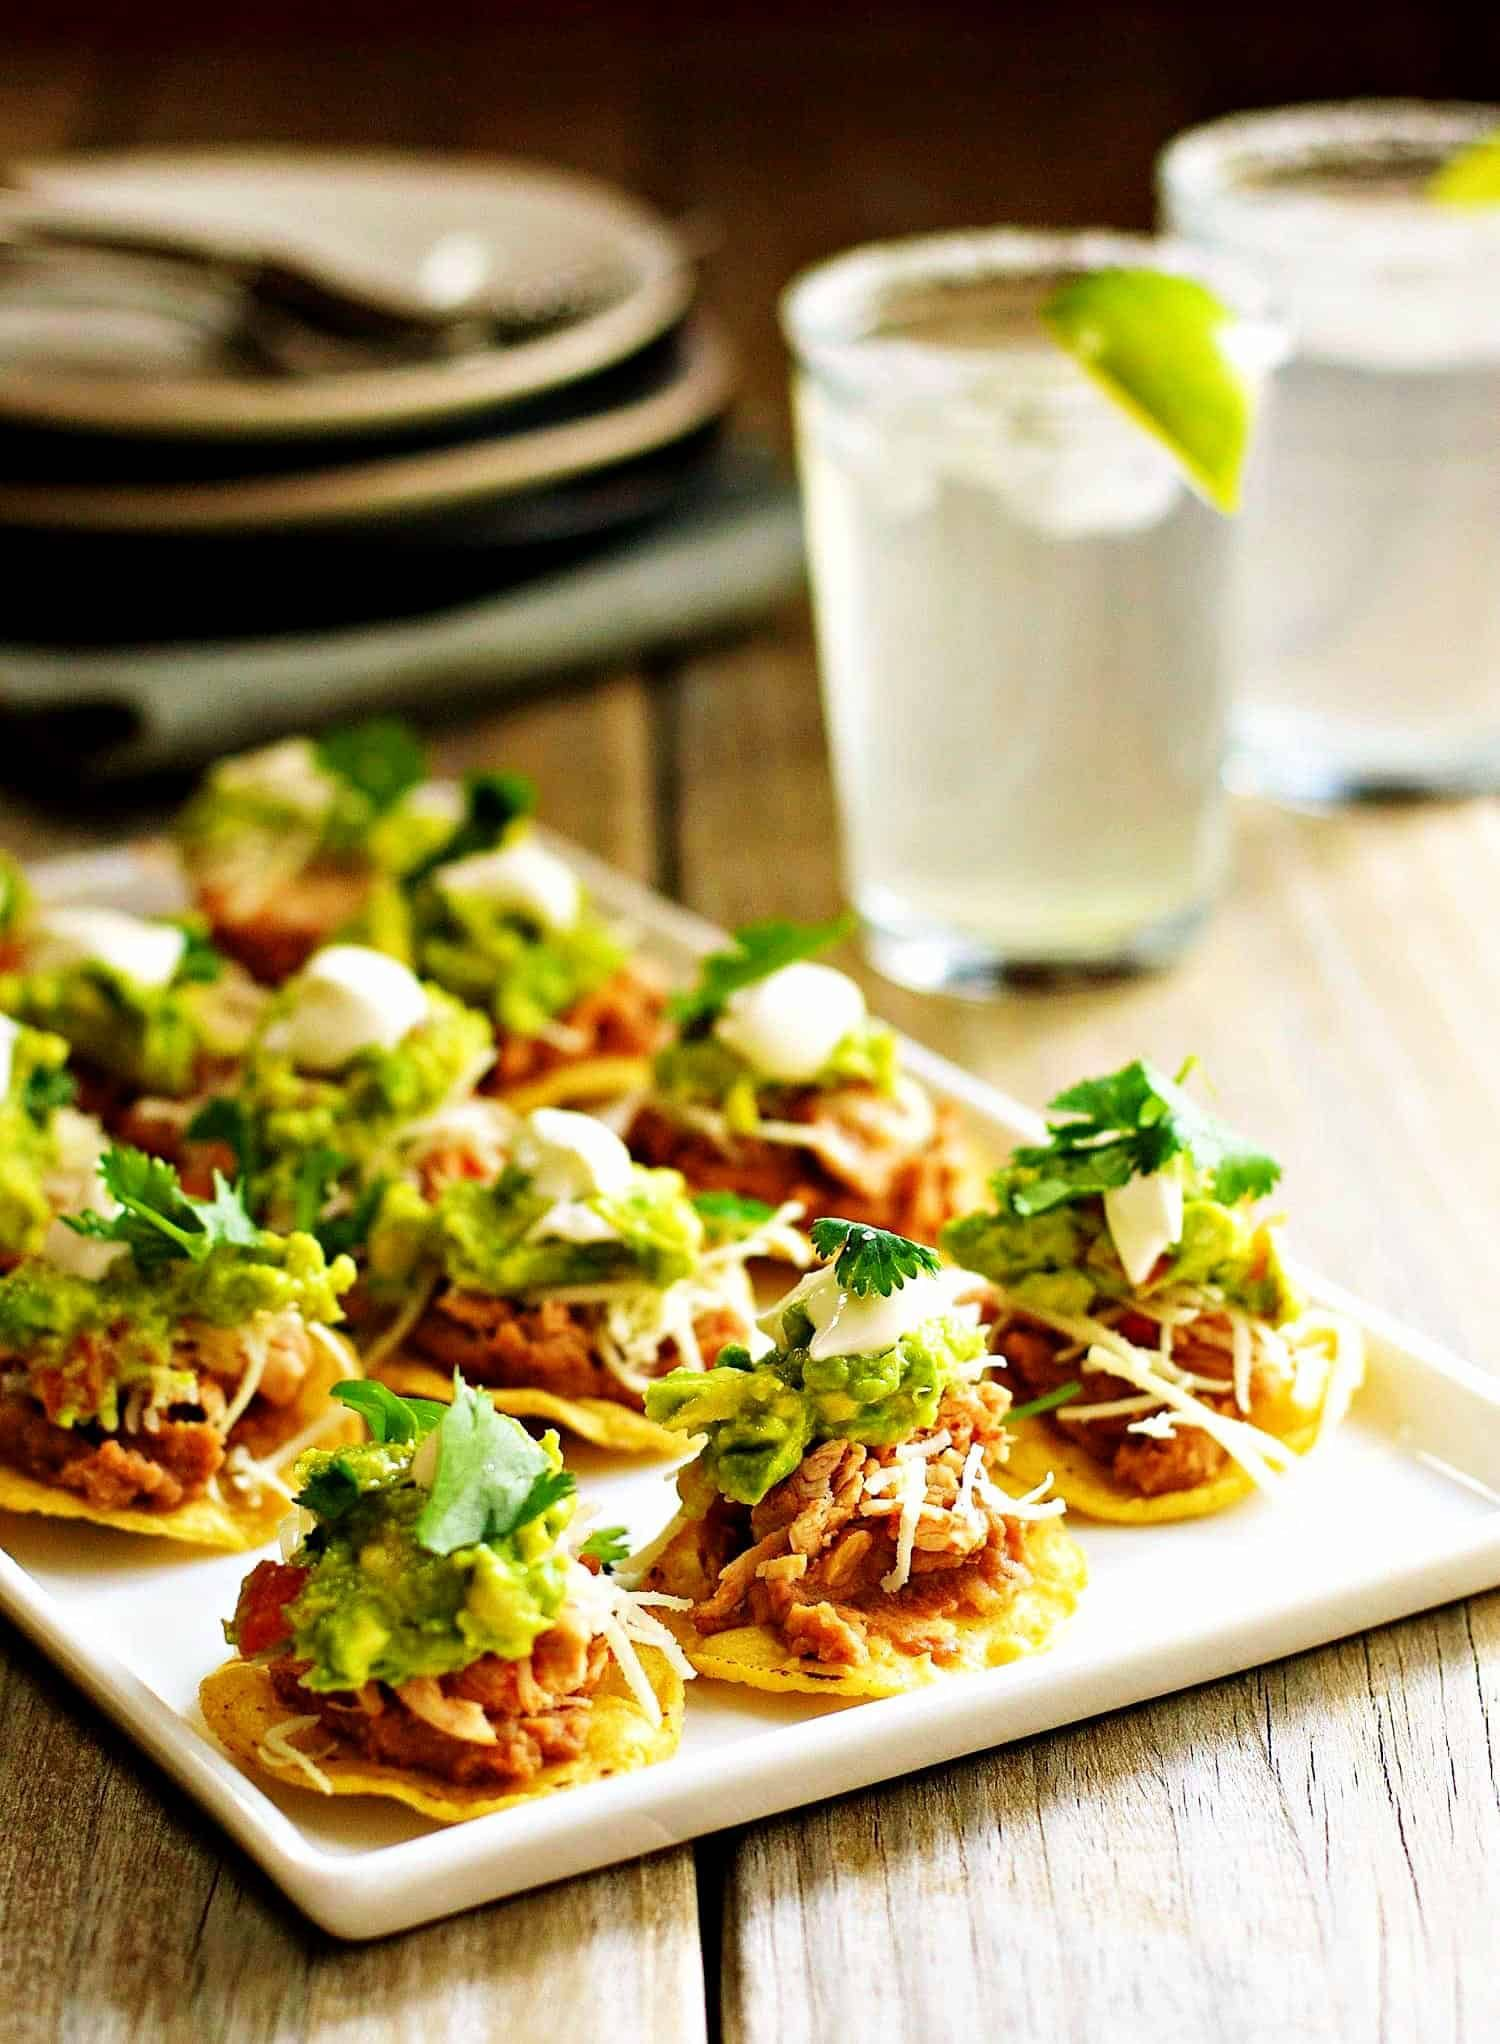 Chicken Tostadas are a Mexican food favorite! Healthy